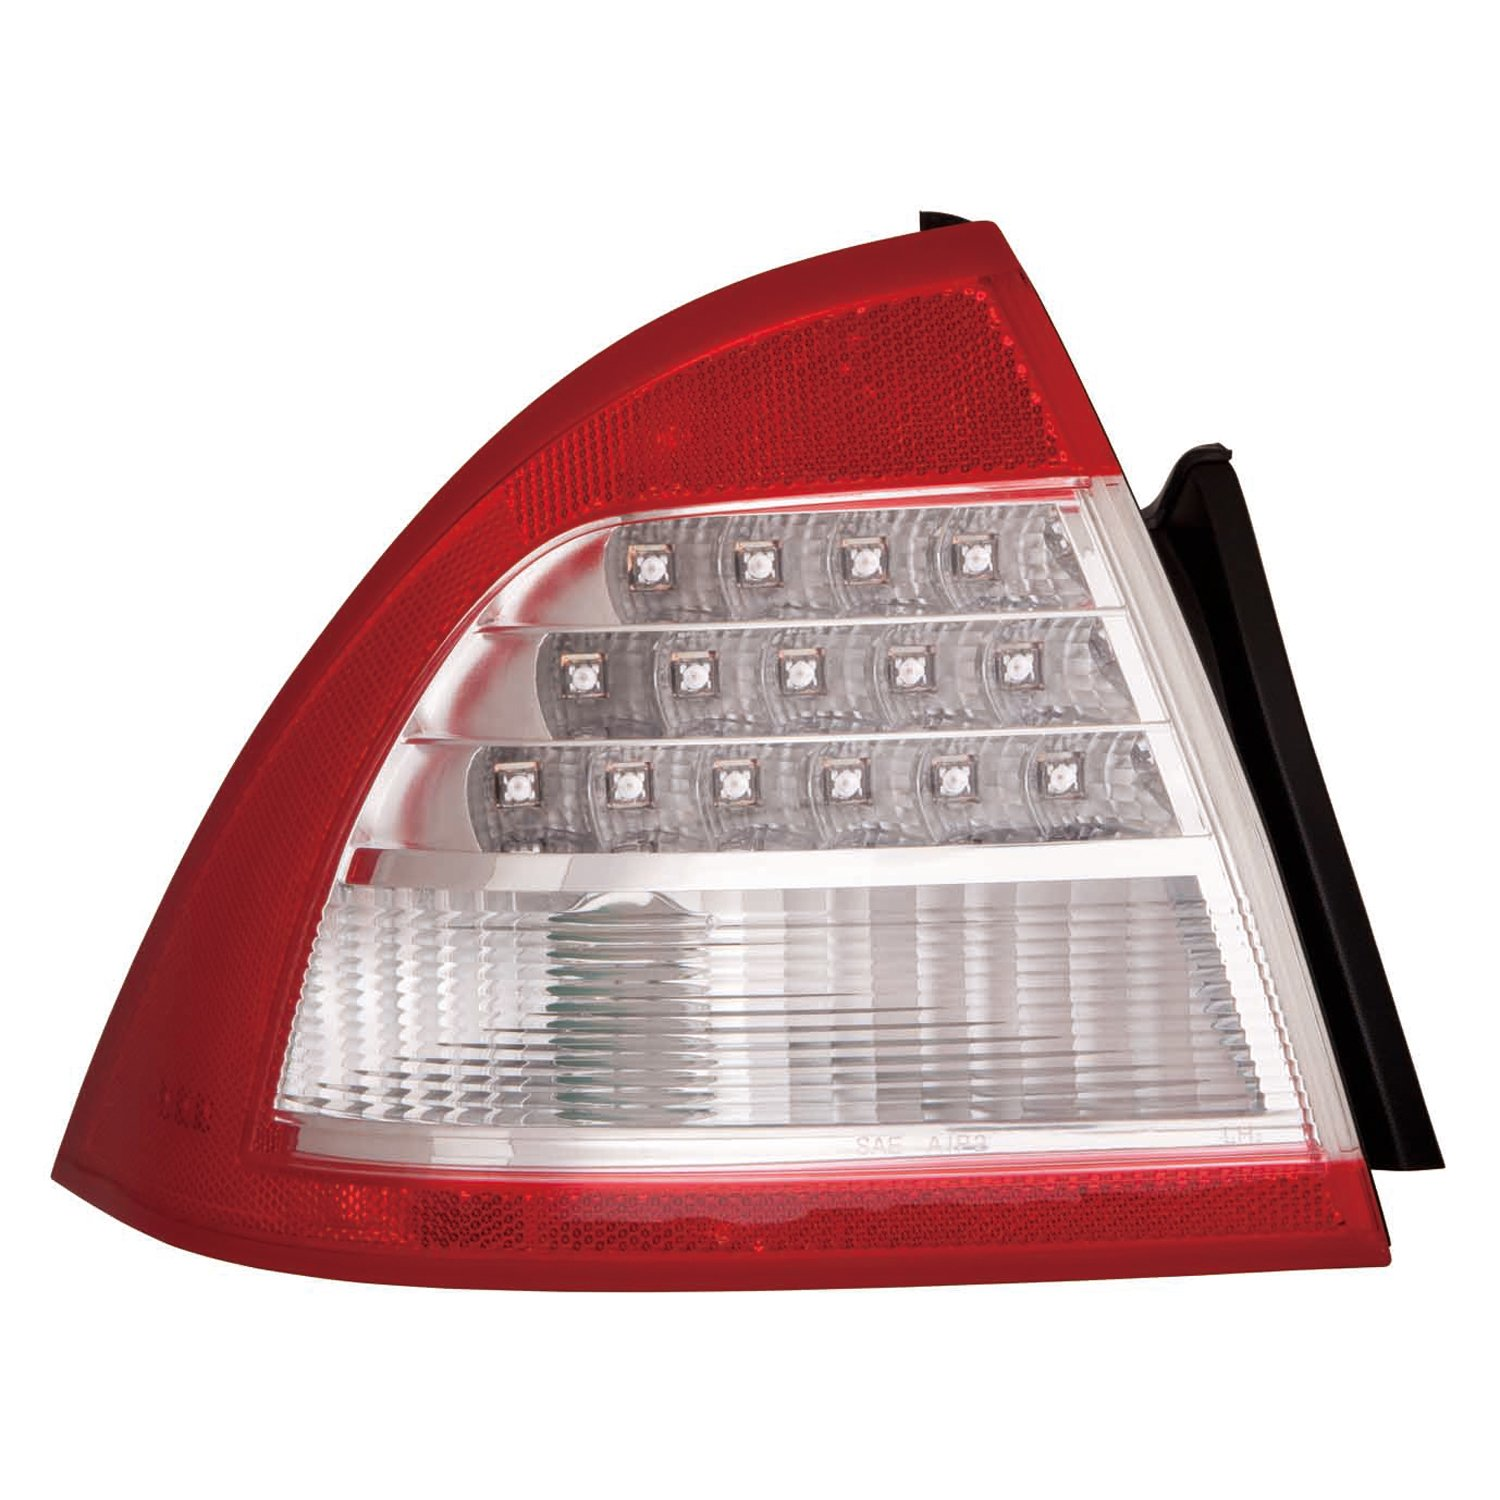 OE Replacement Tail Light MERCURY MILAN 2006-2009 Multiple Manufacturers FO2818128R Partslink FO2818128